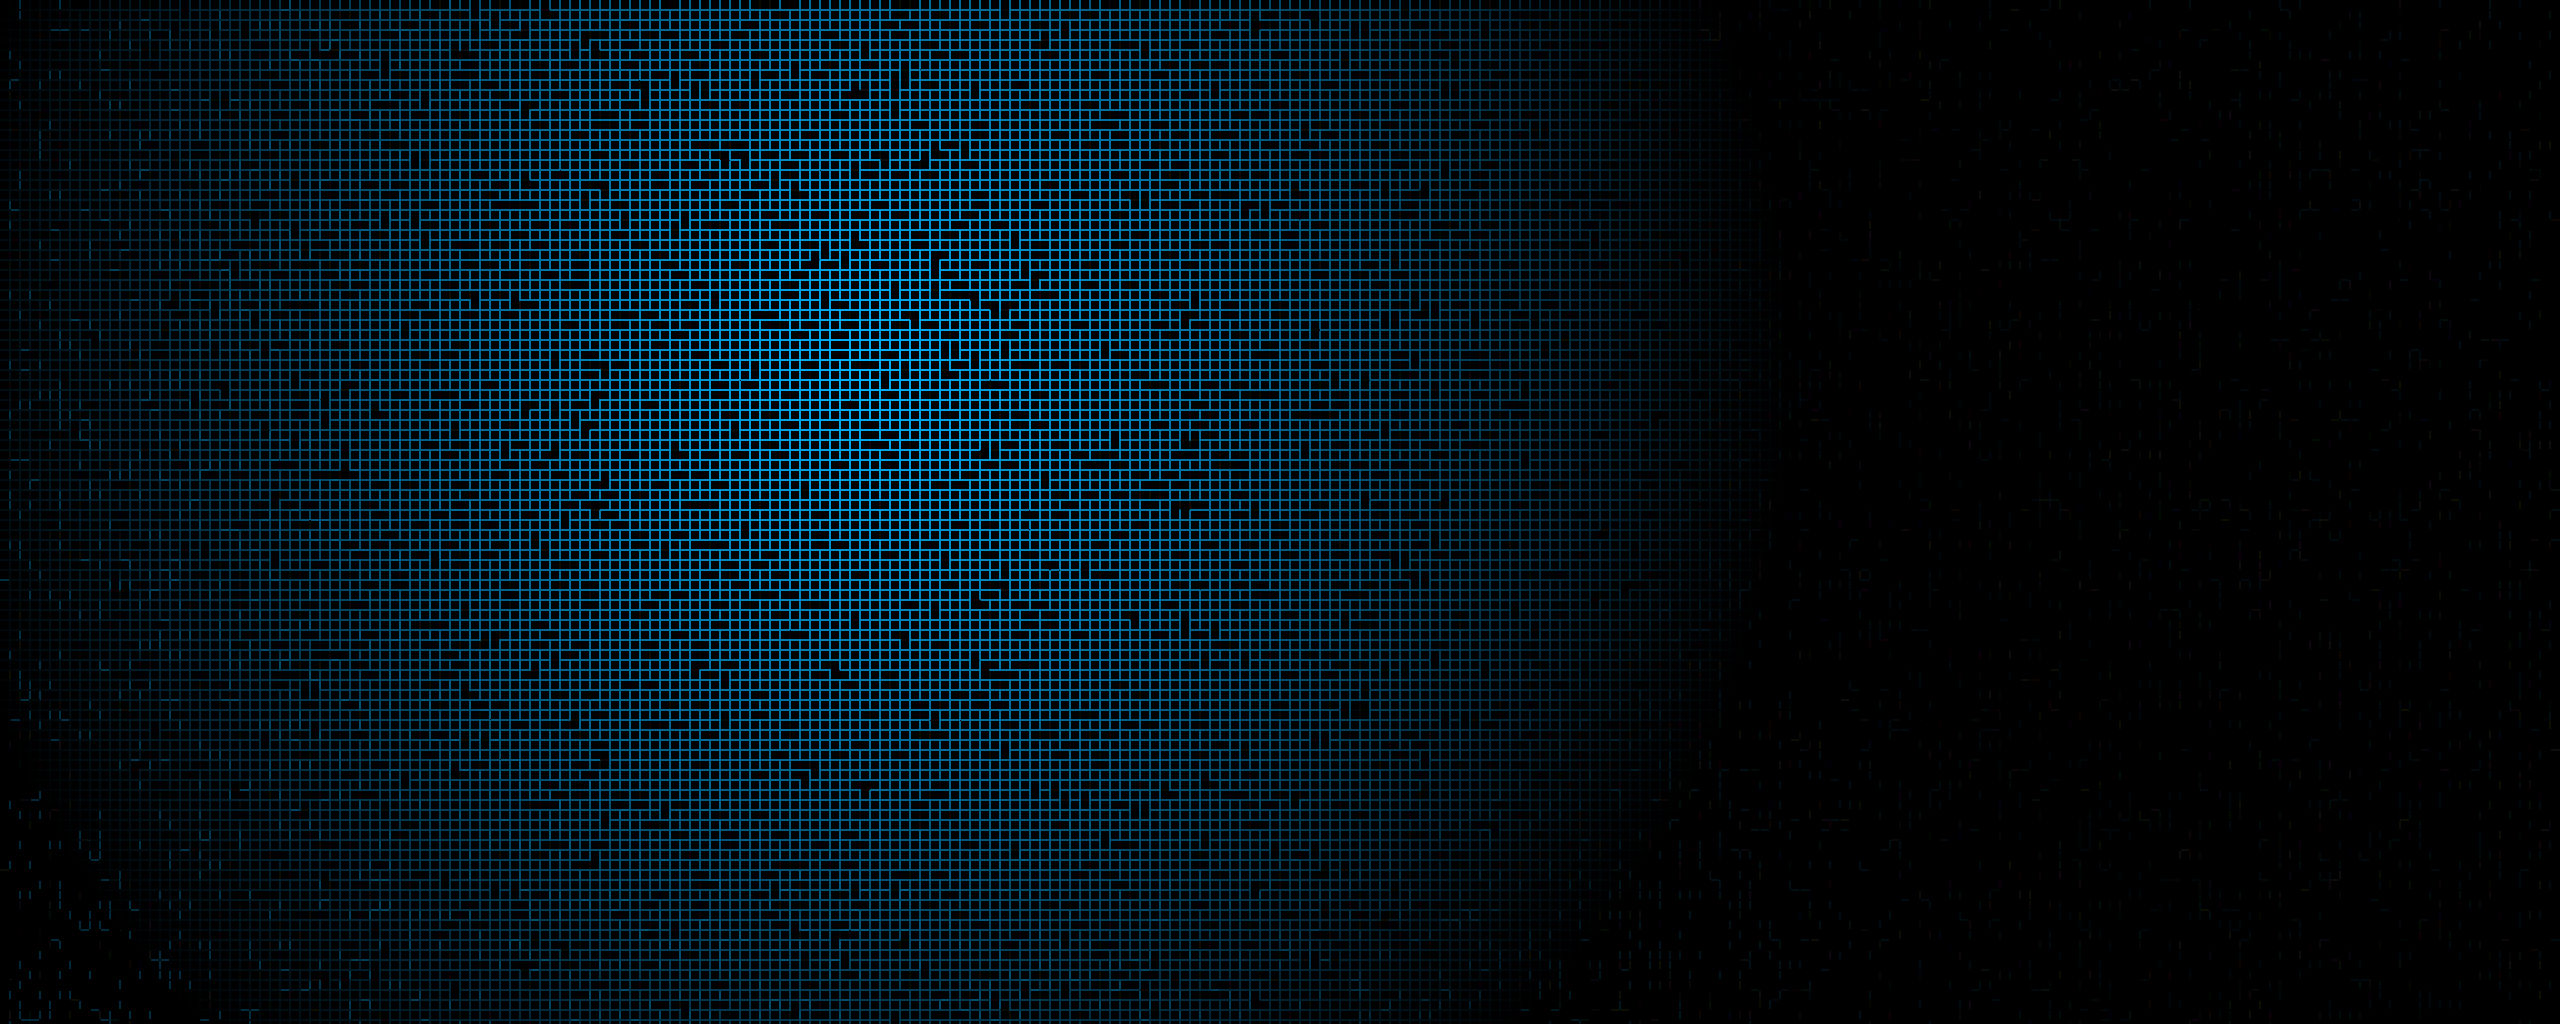 Light Blue And Black Wallpaper